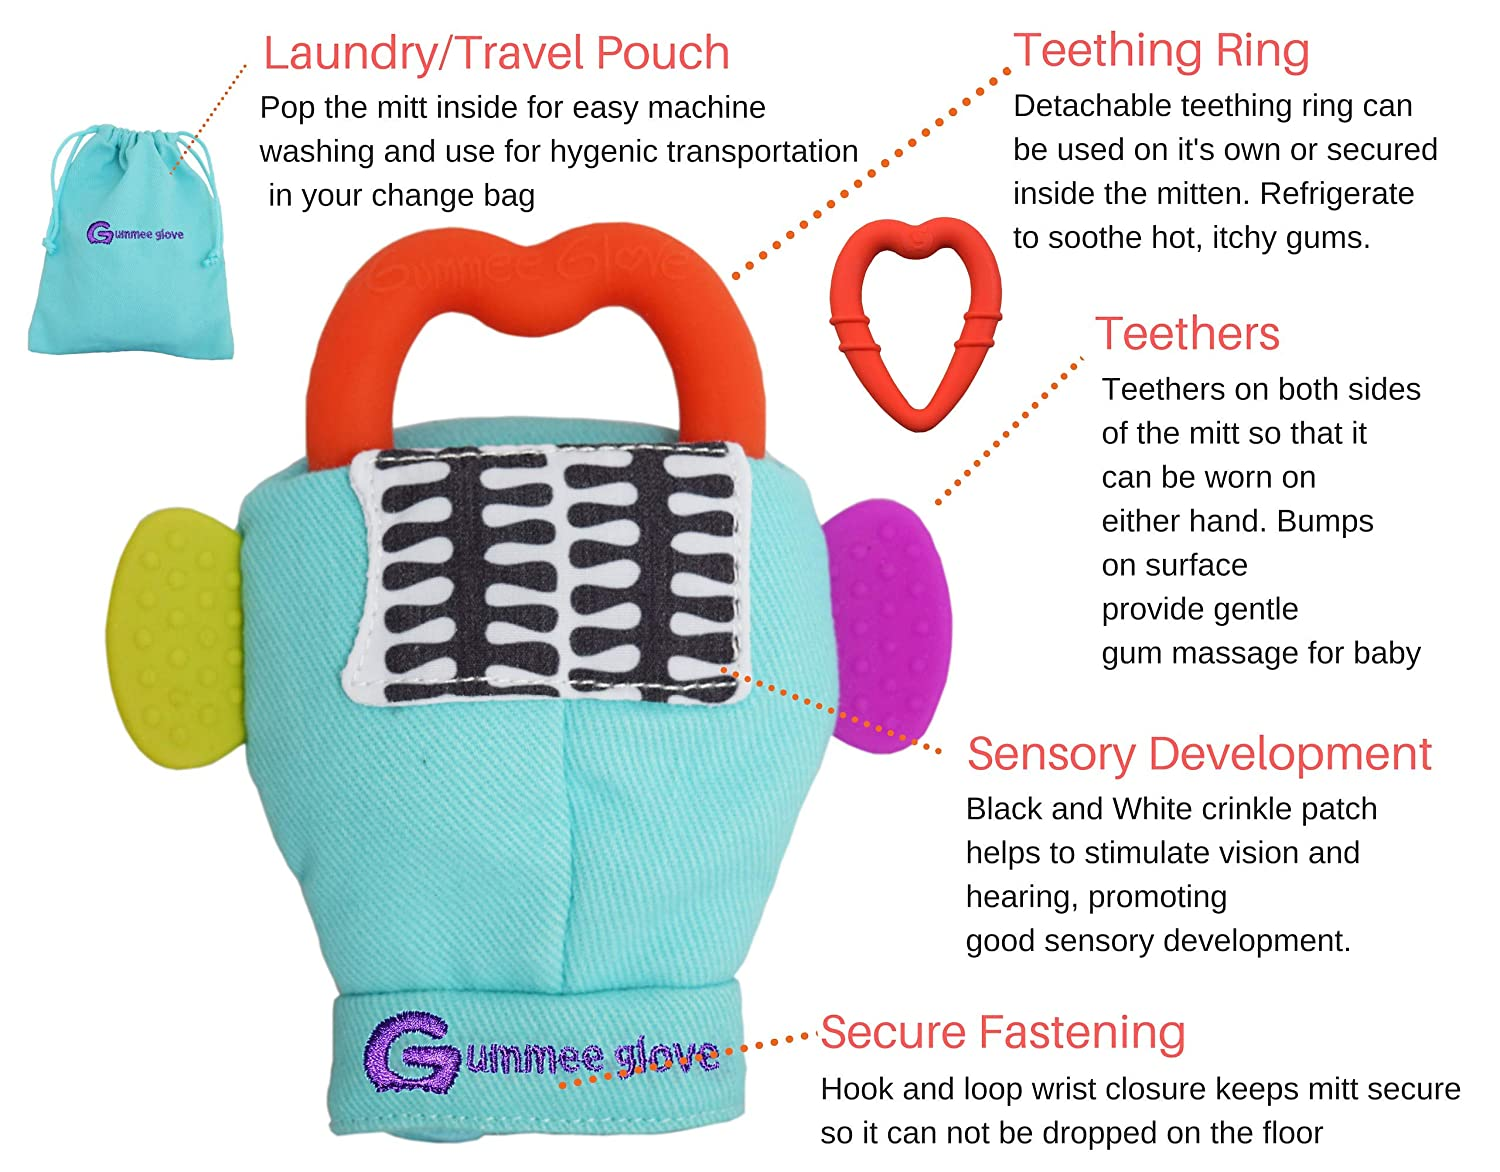 Undroppable Soothe Babies painful gums naturally Multi-Award Winning Product Gummee Glove Baby Teething Mitten for babies 3m with Detachable Teether Ring Toy and travel Bag Safe Premium Quality 100/% Cotton Yellow